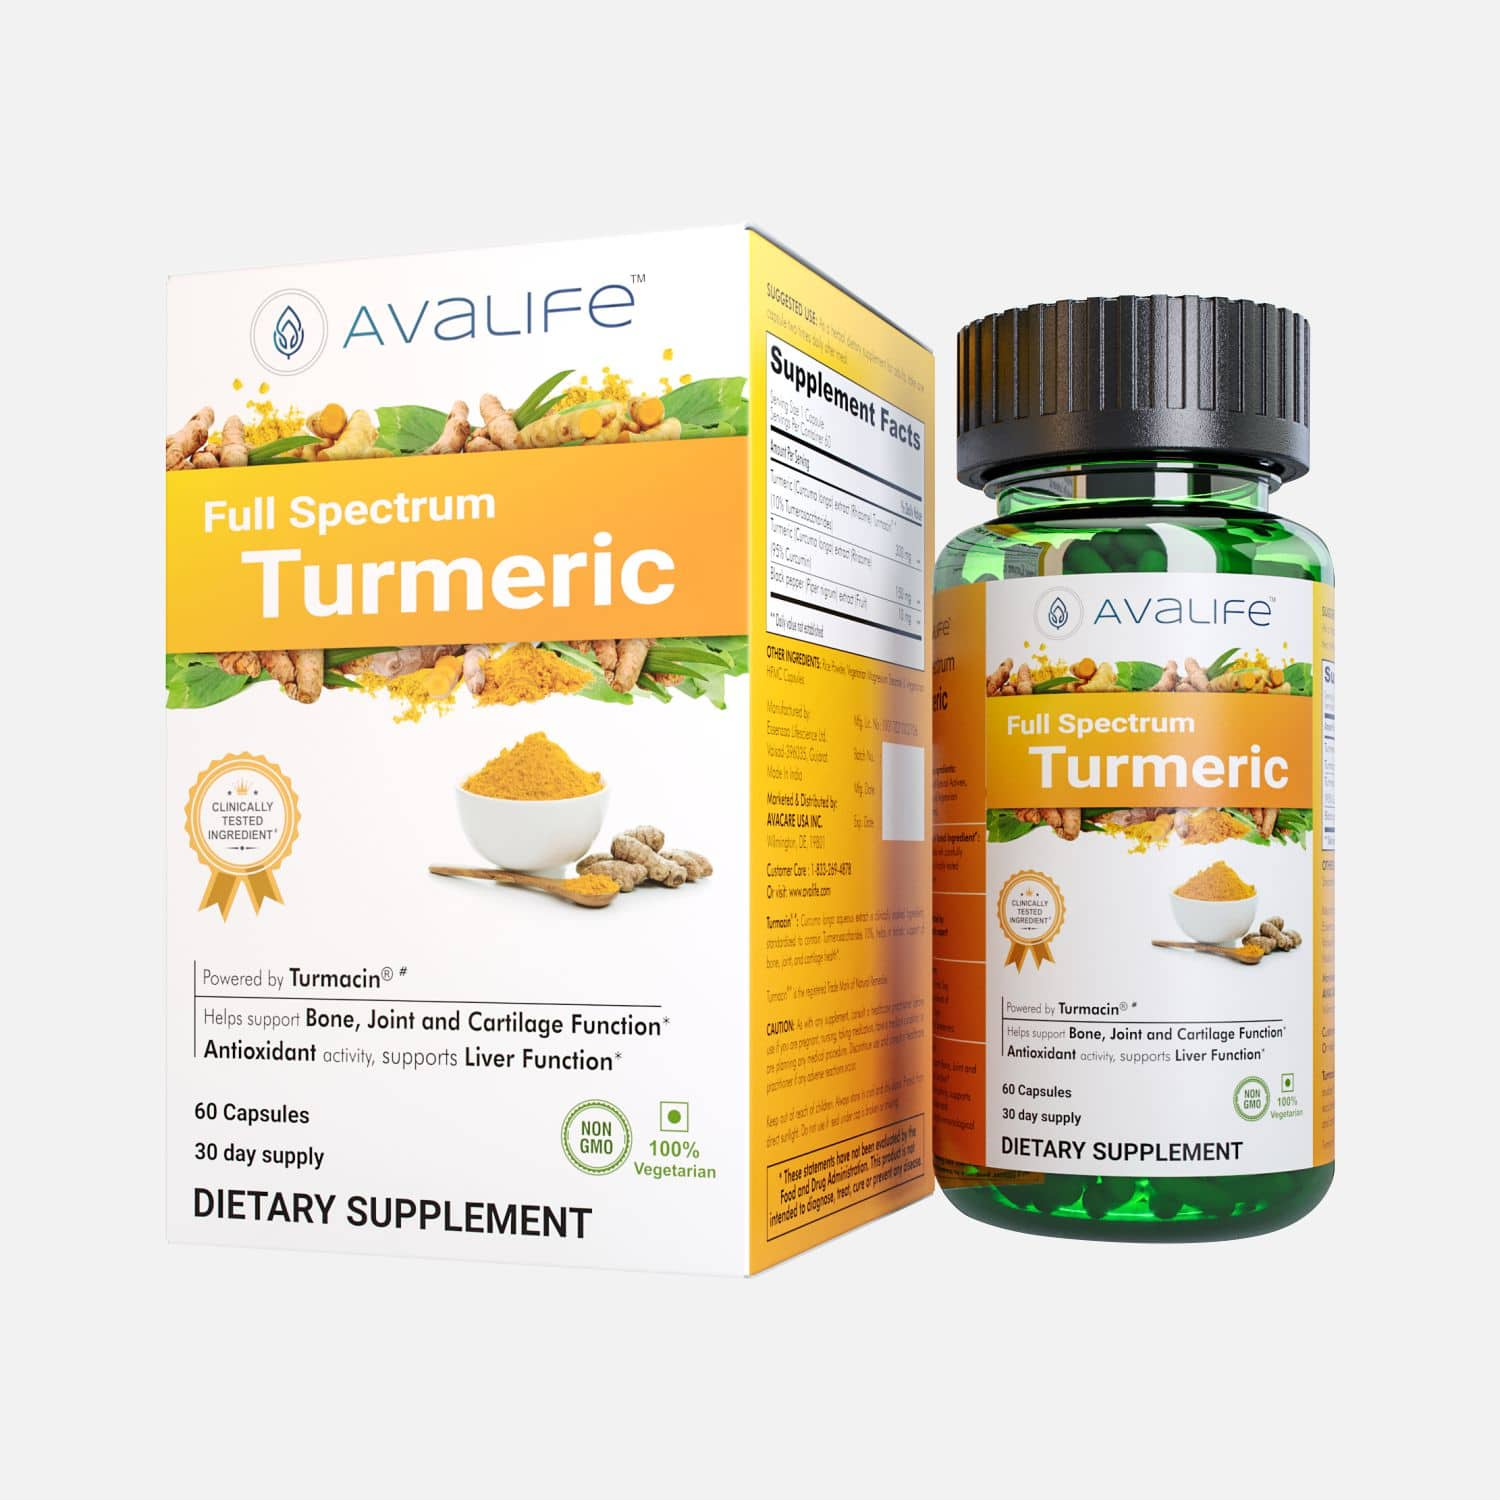 Full Spectrum Turmeric